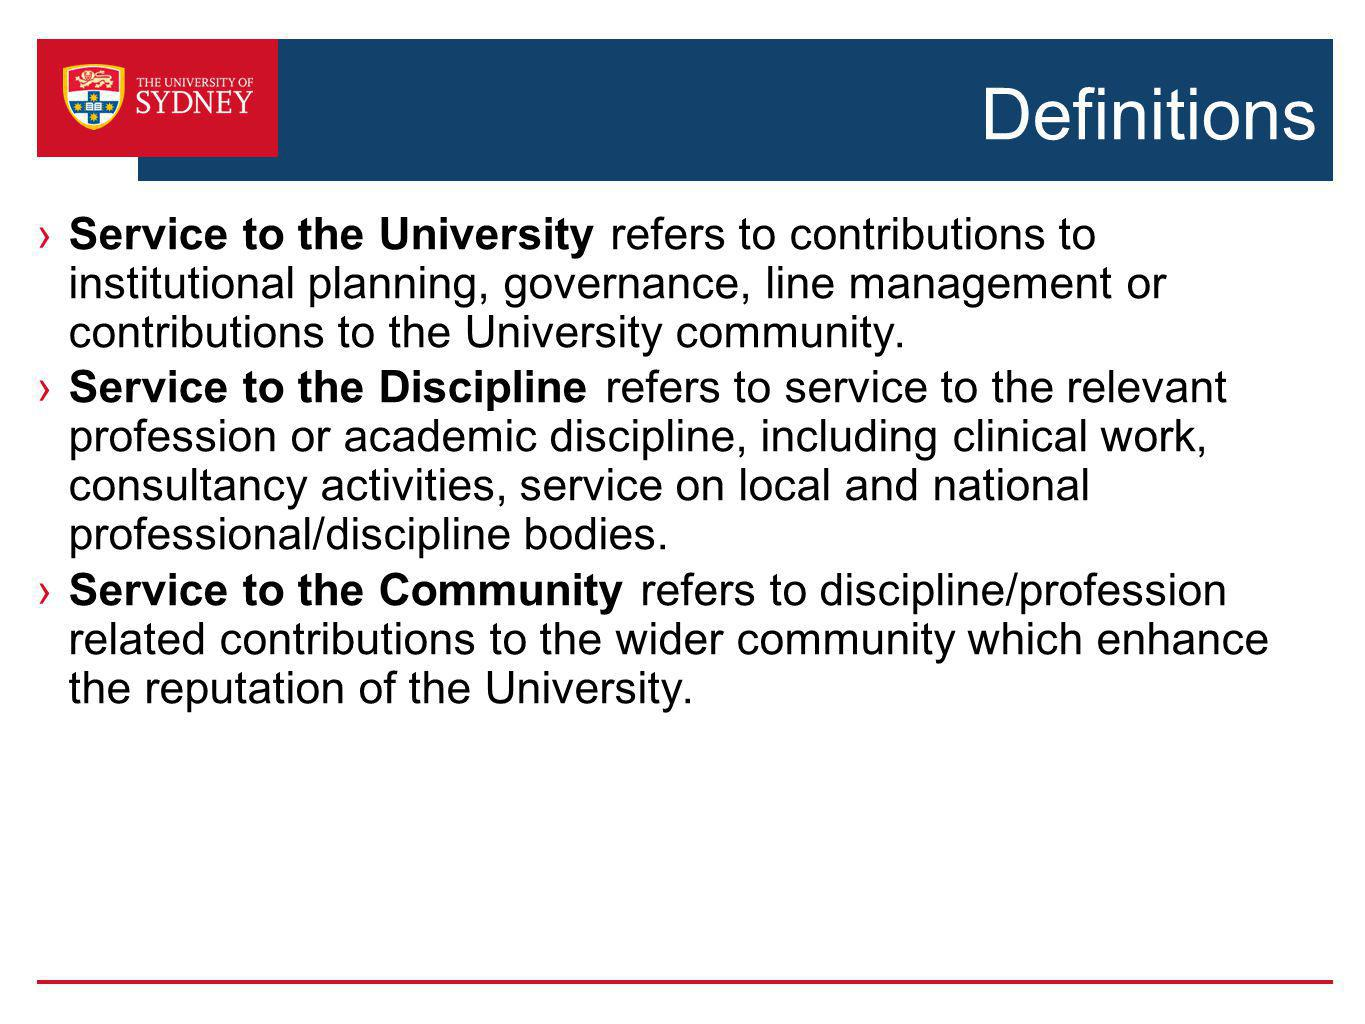 Definitions Service to the University refers to contributions to institutional planning, governance, line management or contributions to the University community.